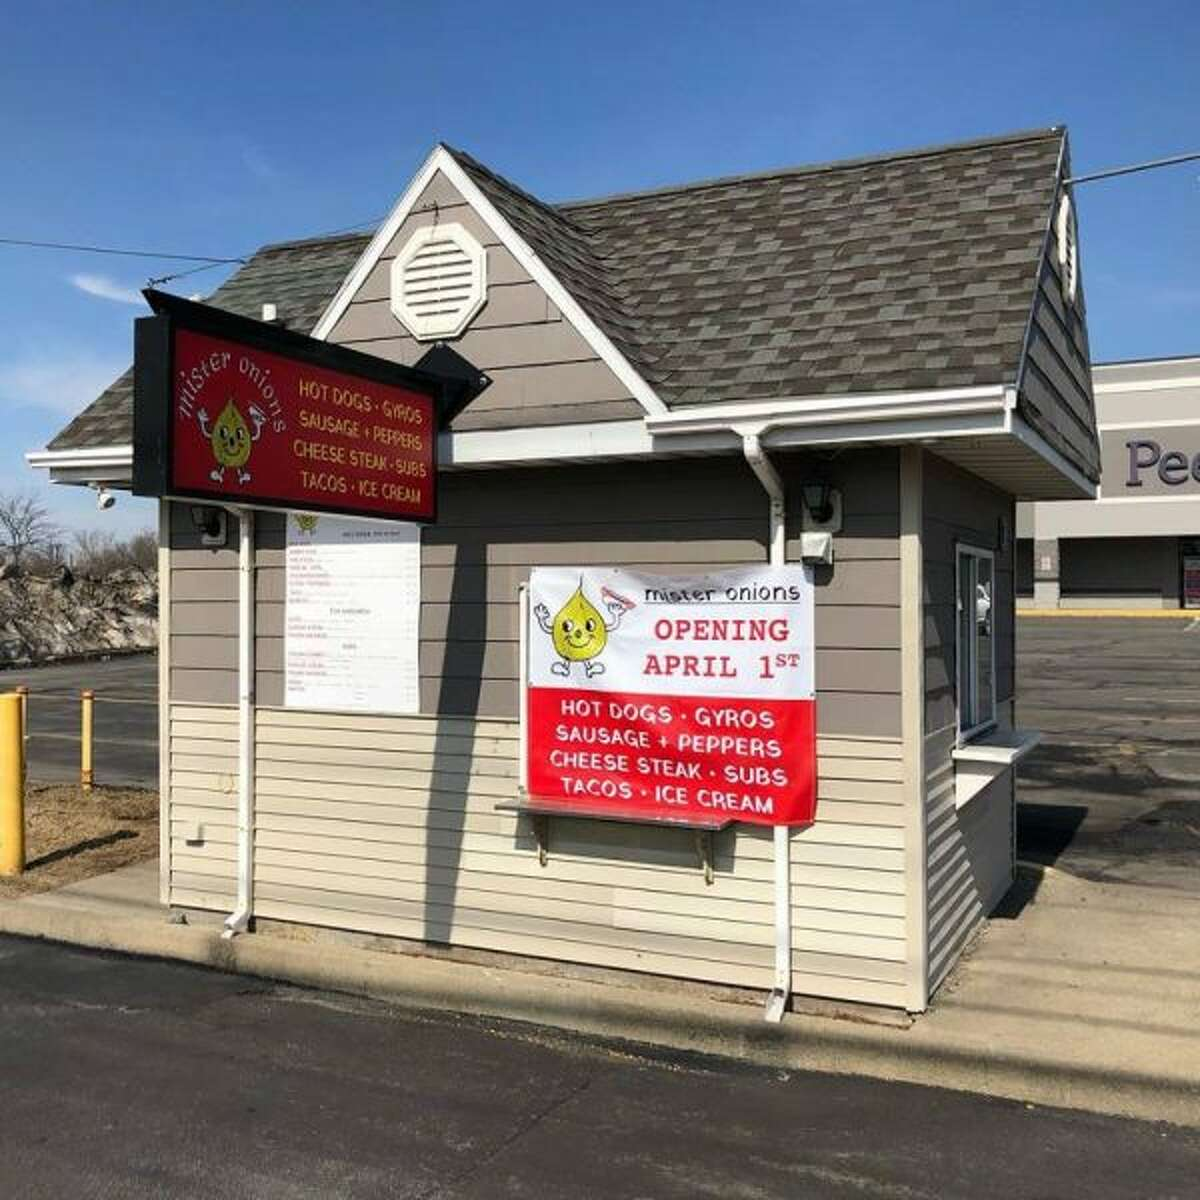 A little takeout hut in the parking lot of the Columbia Plaza strip mall in East Greenbush is being redeveloped as Mister Onions, with an opening scheduled for April 1, 2019.